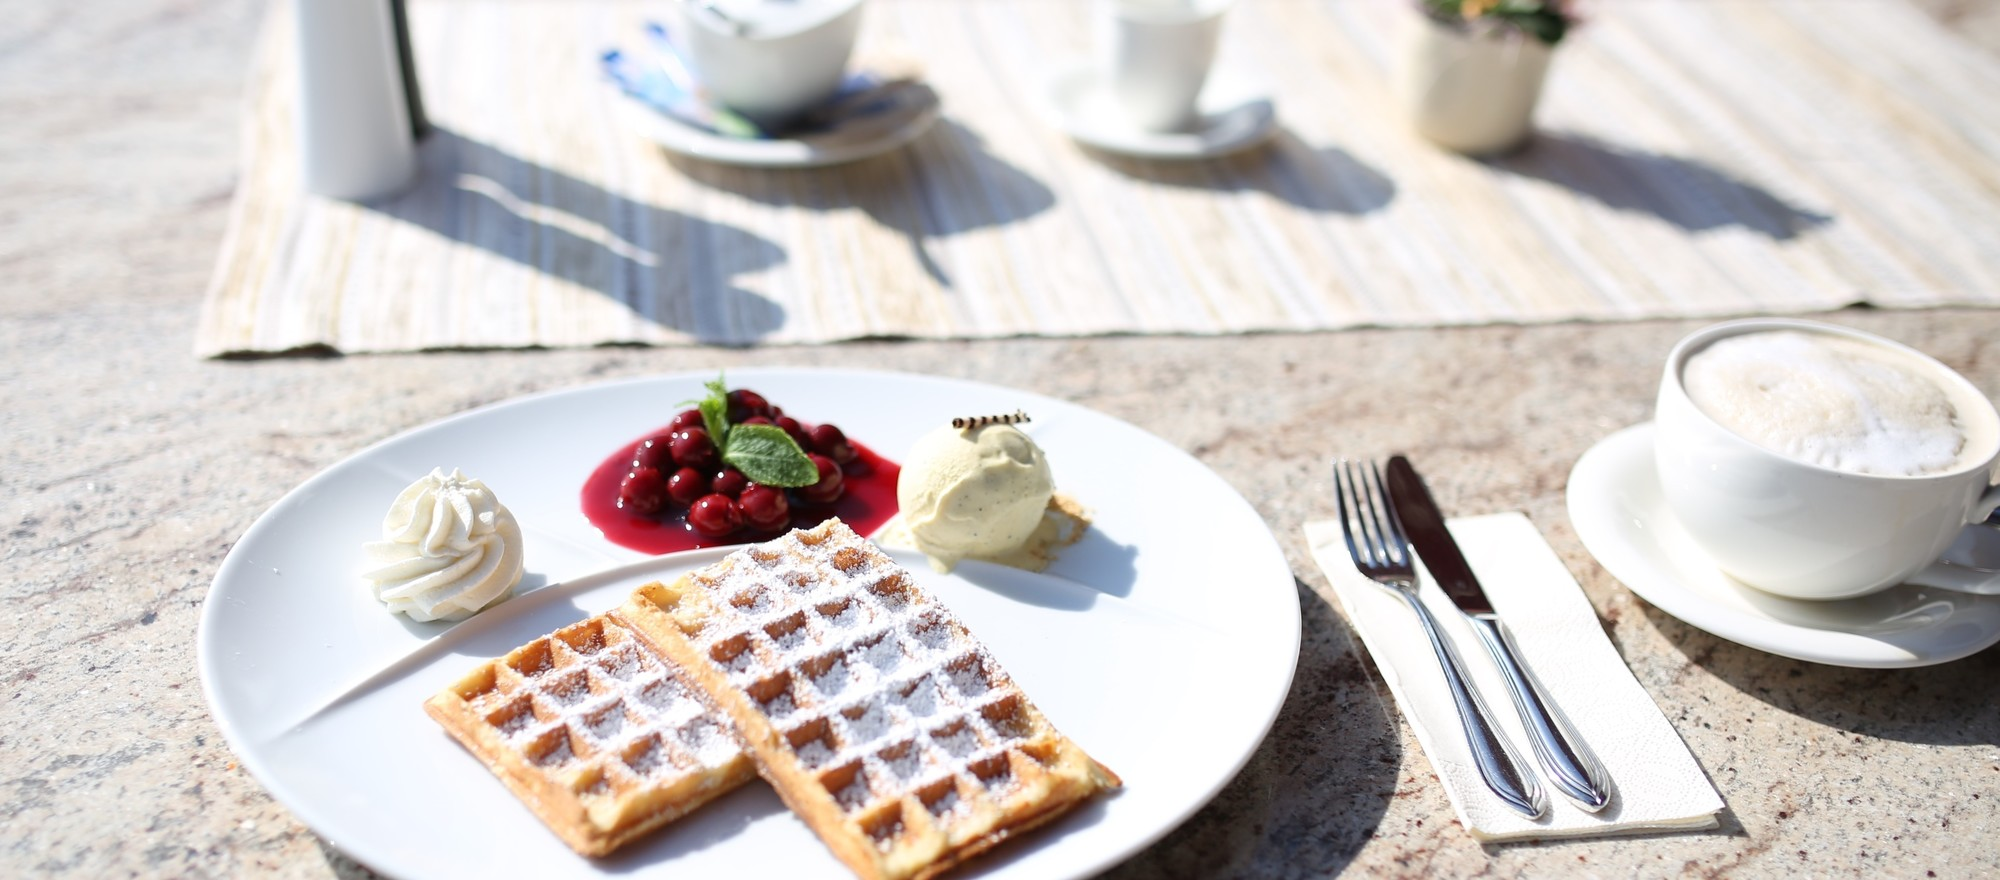 Enjoy coffee and waffles at the 4-star hotel Ringhotel Rheinhotel Vier Jahreszeiten in Meerbusch